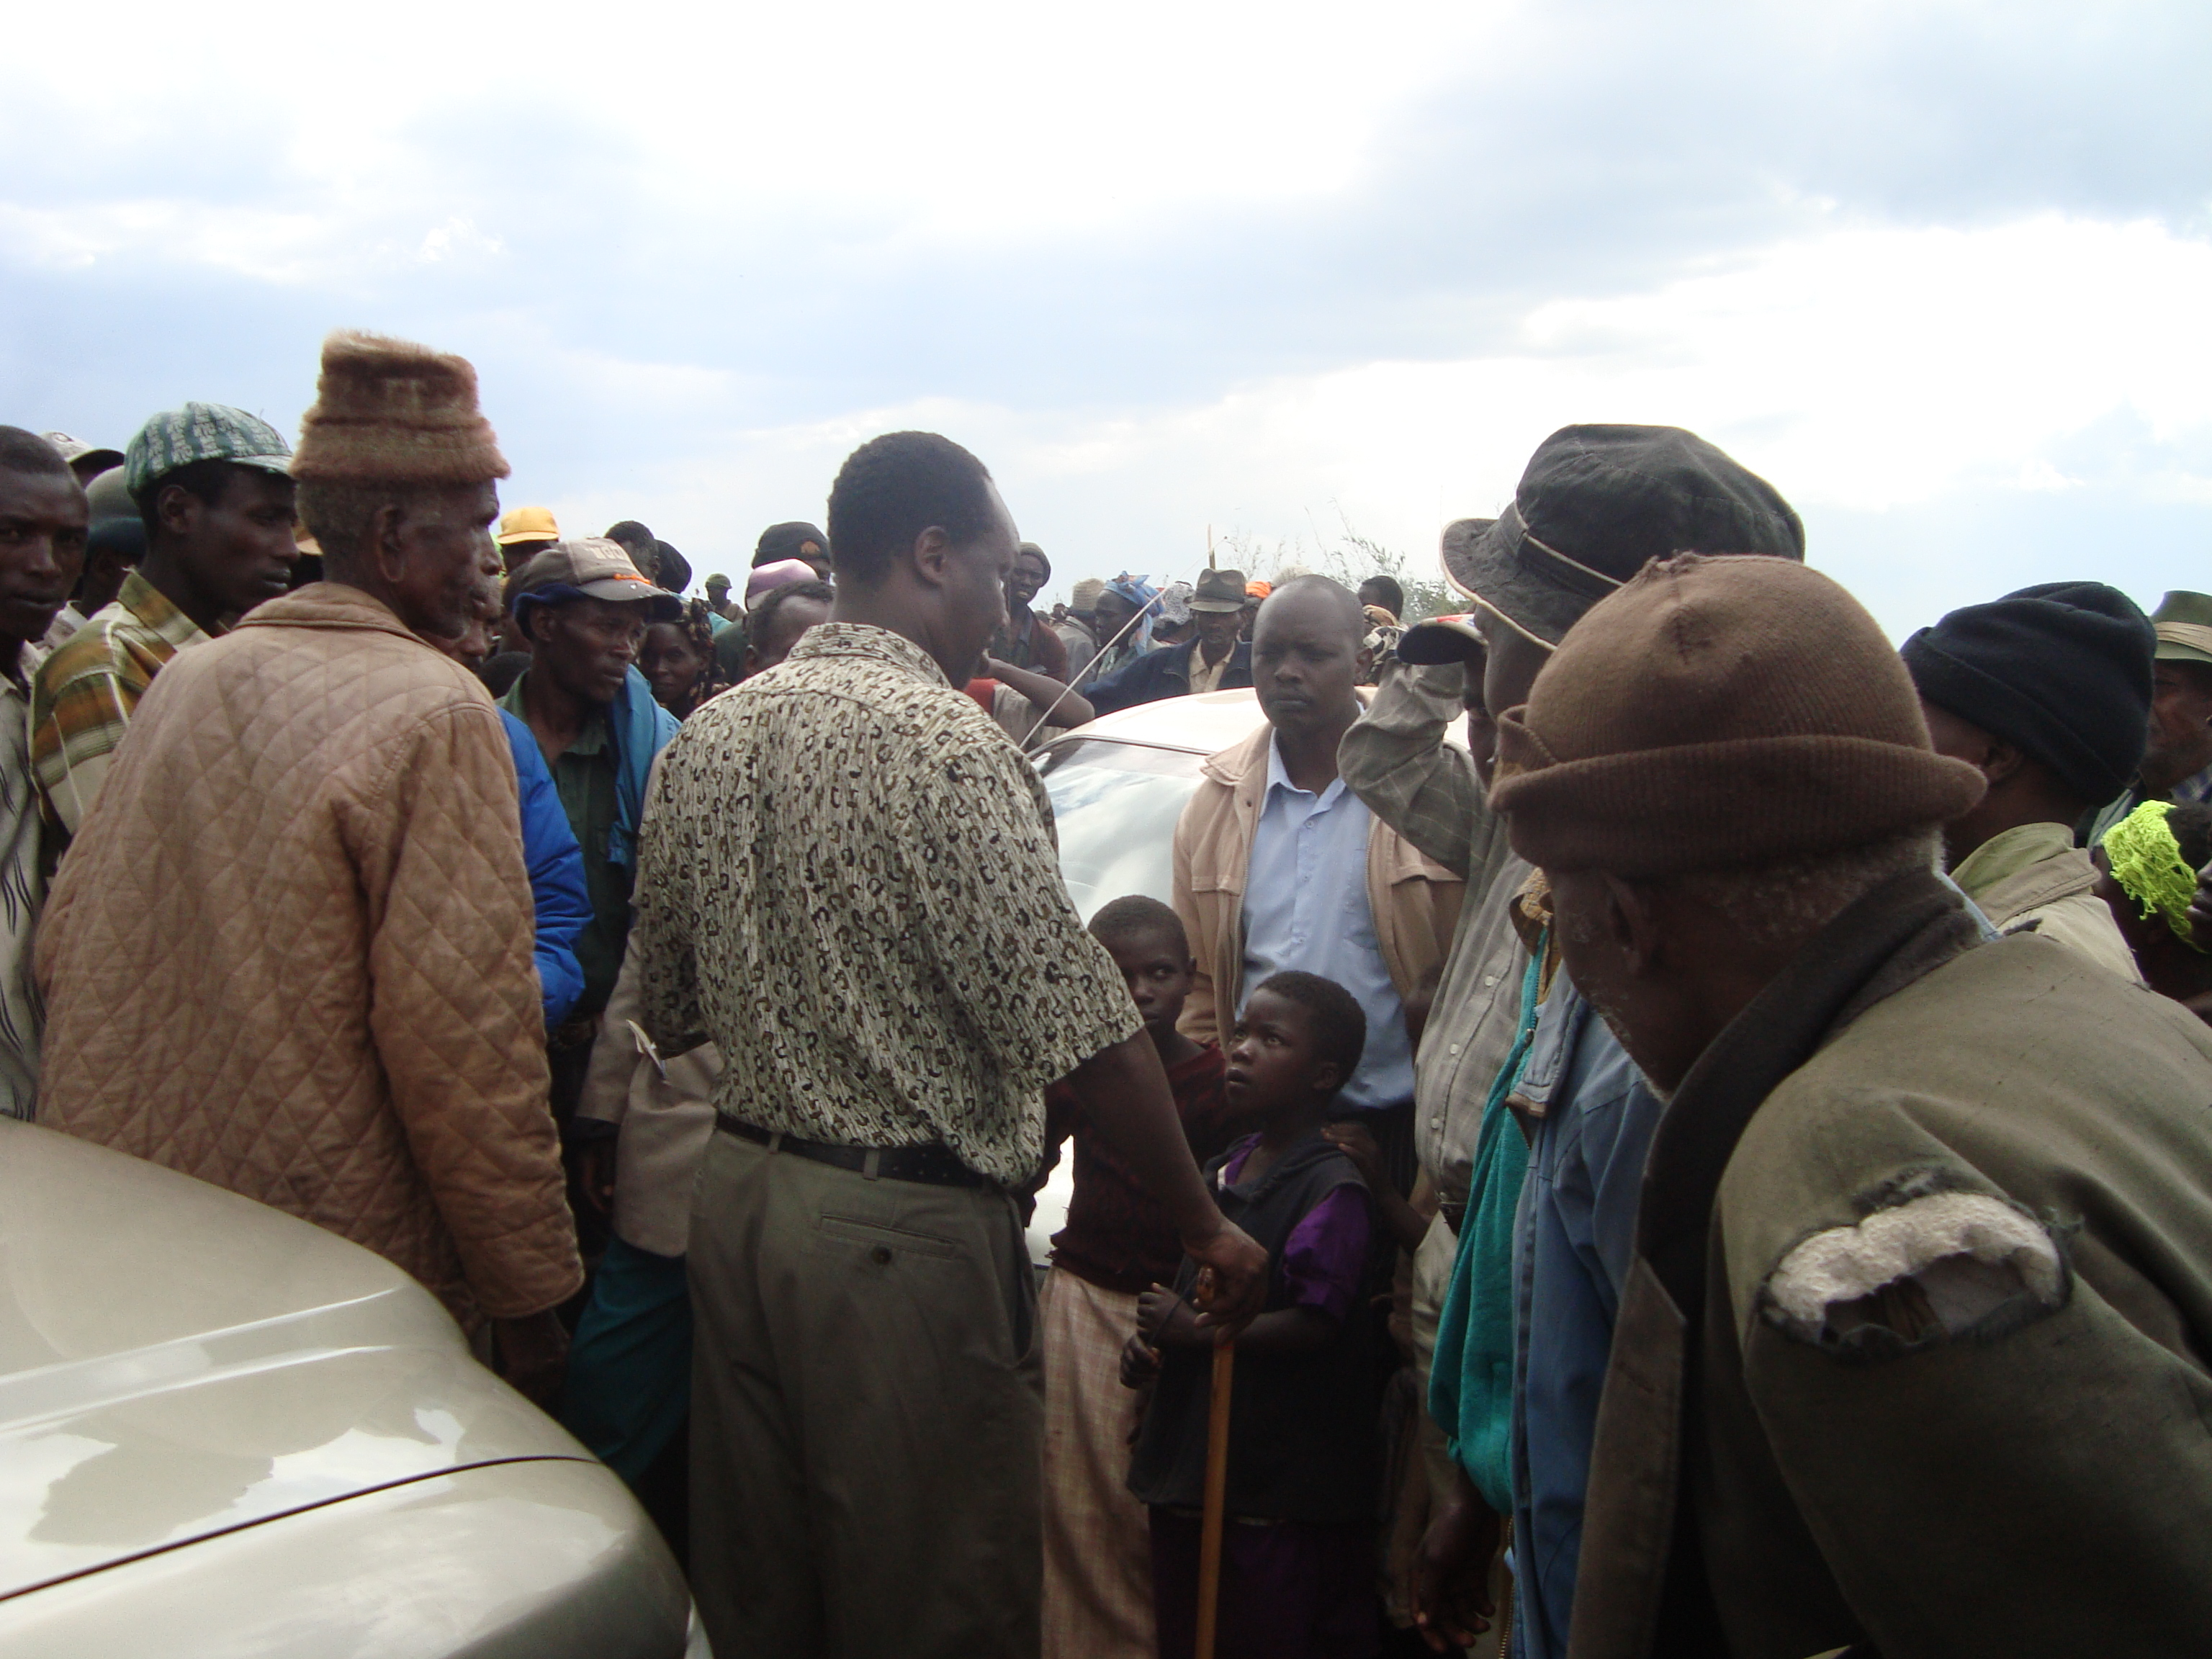 Former Commissioner Samuel Tororei addressing Mau forest evictees immediately after evicted from the forest in 2009